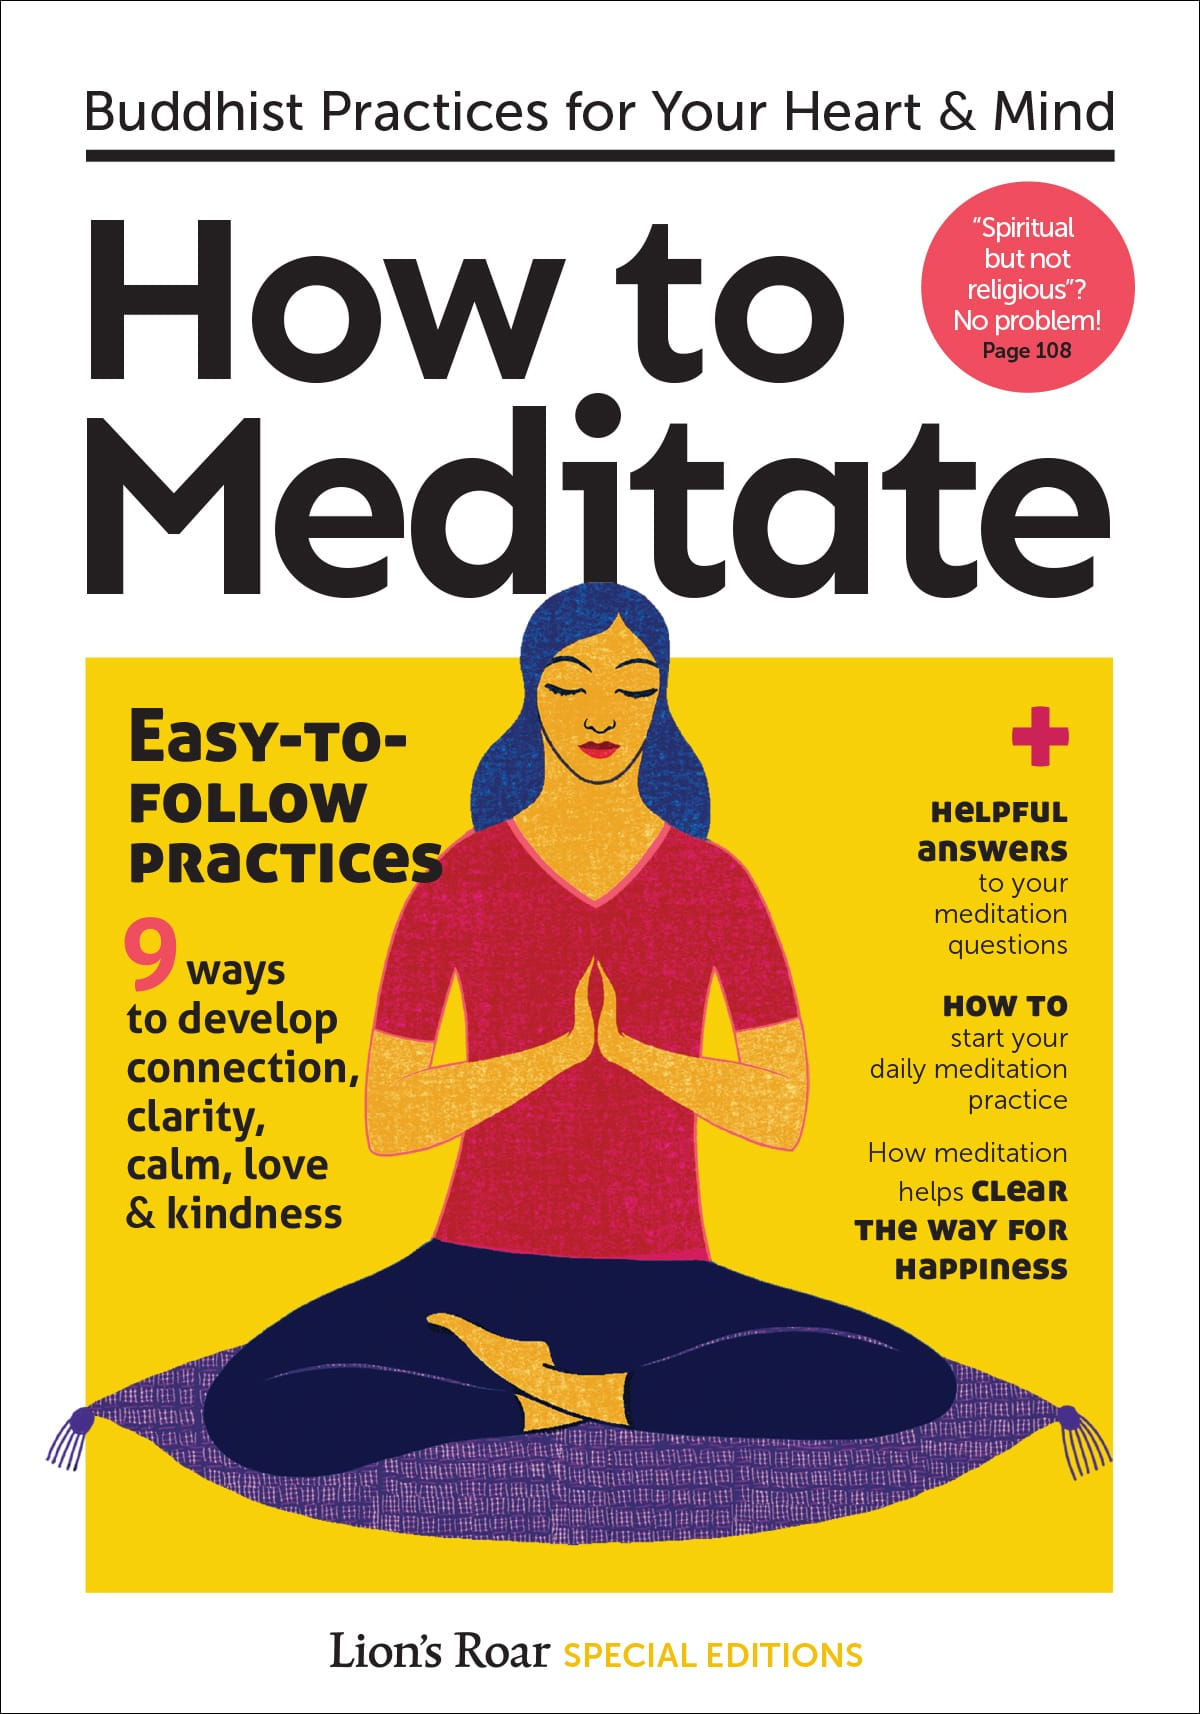 How To Meditate: Buddhist Practices for Your Heart & Mind. Design by Megumi Yoshida; cover illustration by Carole Henaff.